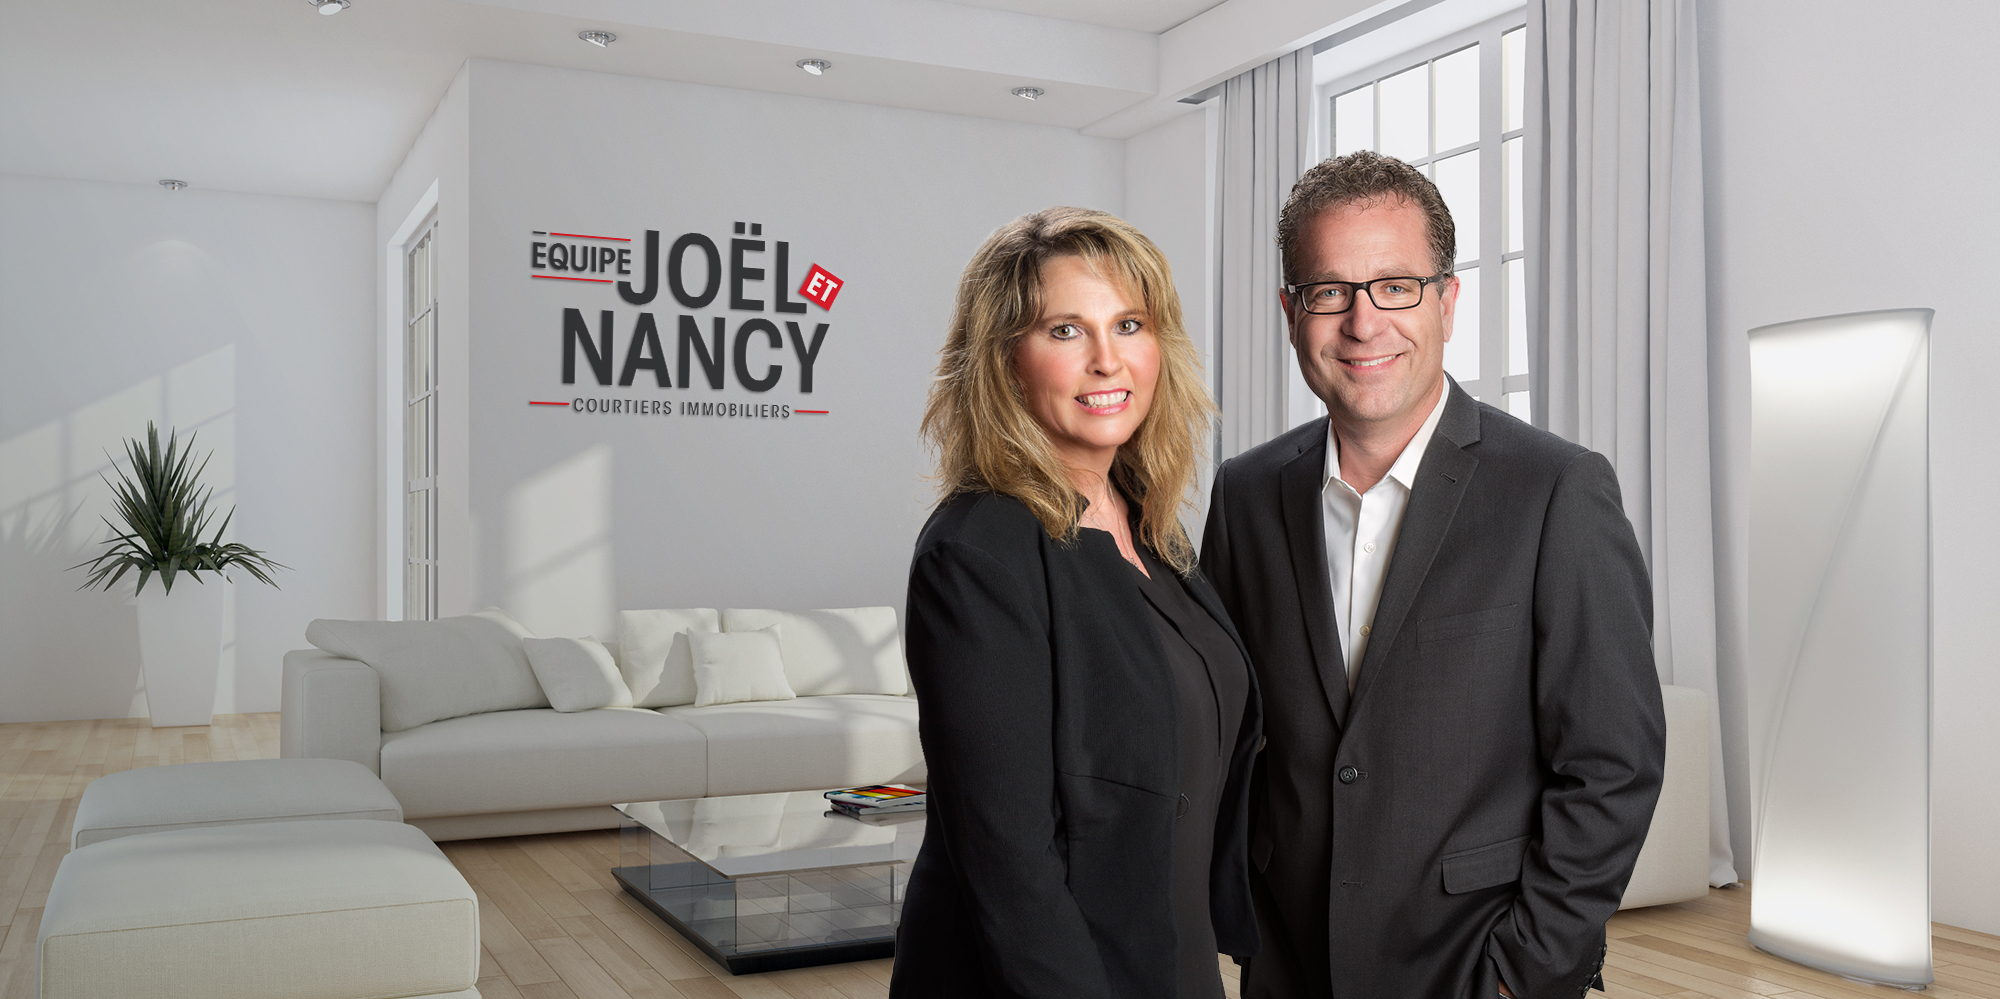 Joël & Nancy Team